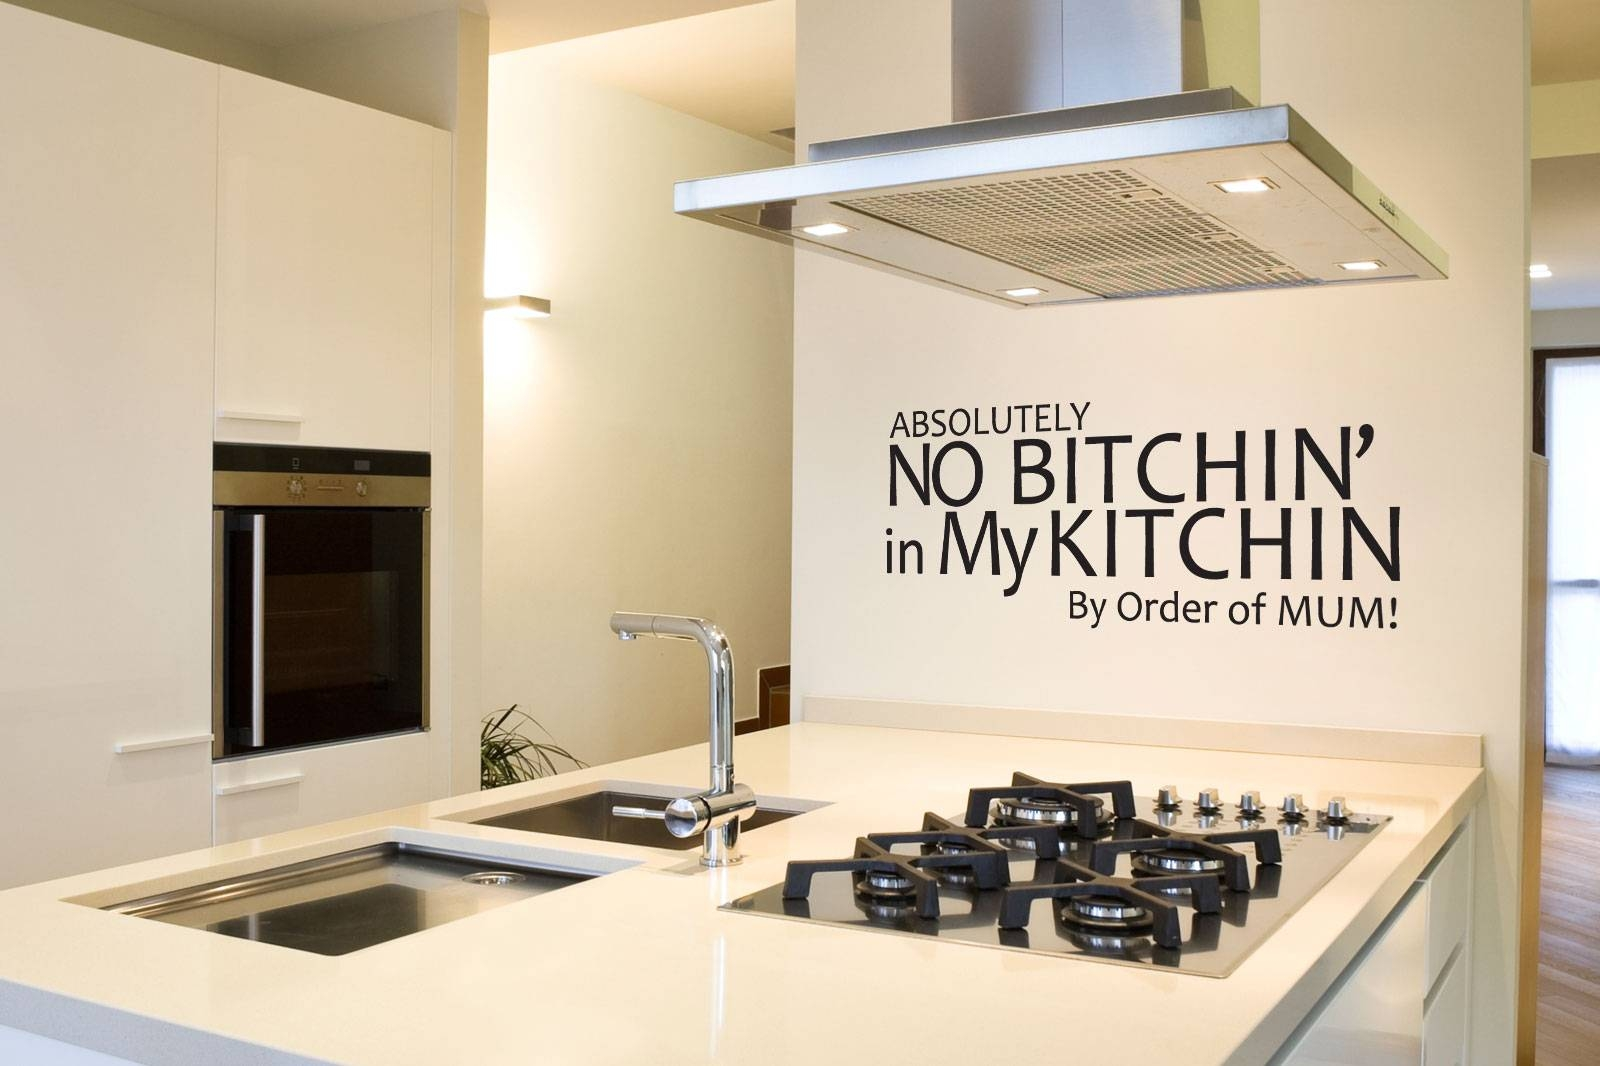 Modern Diy Kitchen Wall Decor Diy Kitchen Wall Decor Ideas With Pertaining To Most Current Cool Kitchen Wall Art (View 13 of 15)